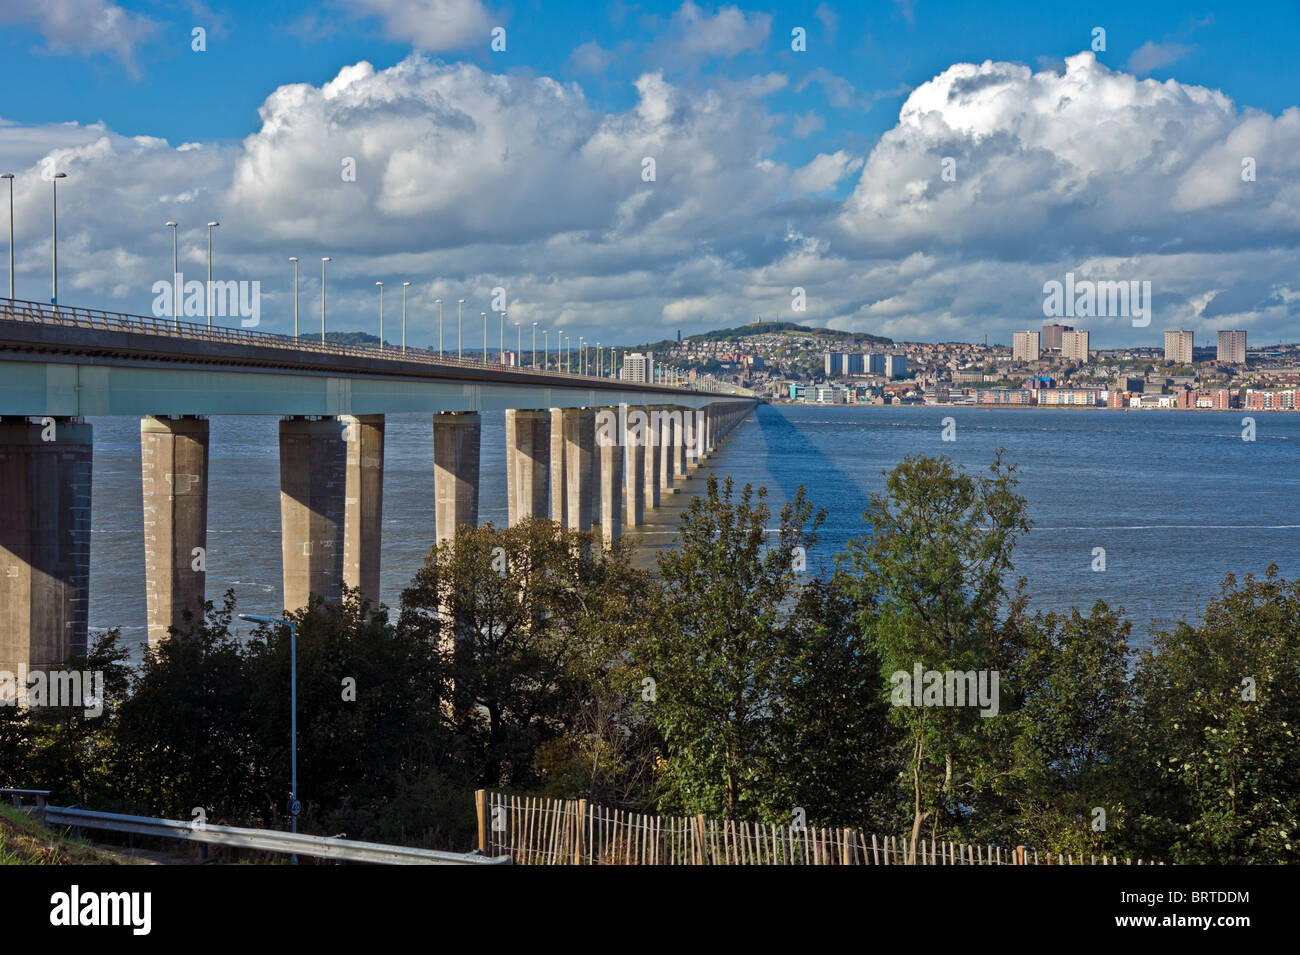 Tay Road Bridge linking Fife with Dundee in Scotland by crossing the Firth of Tay as seen from the Fife side near - Stock Image